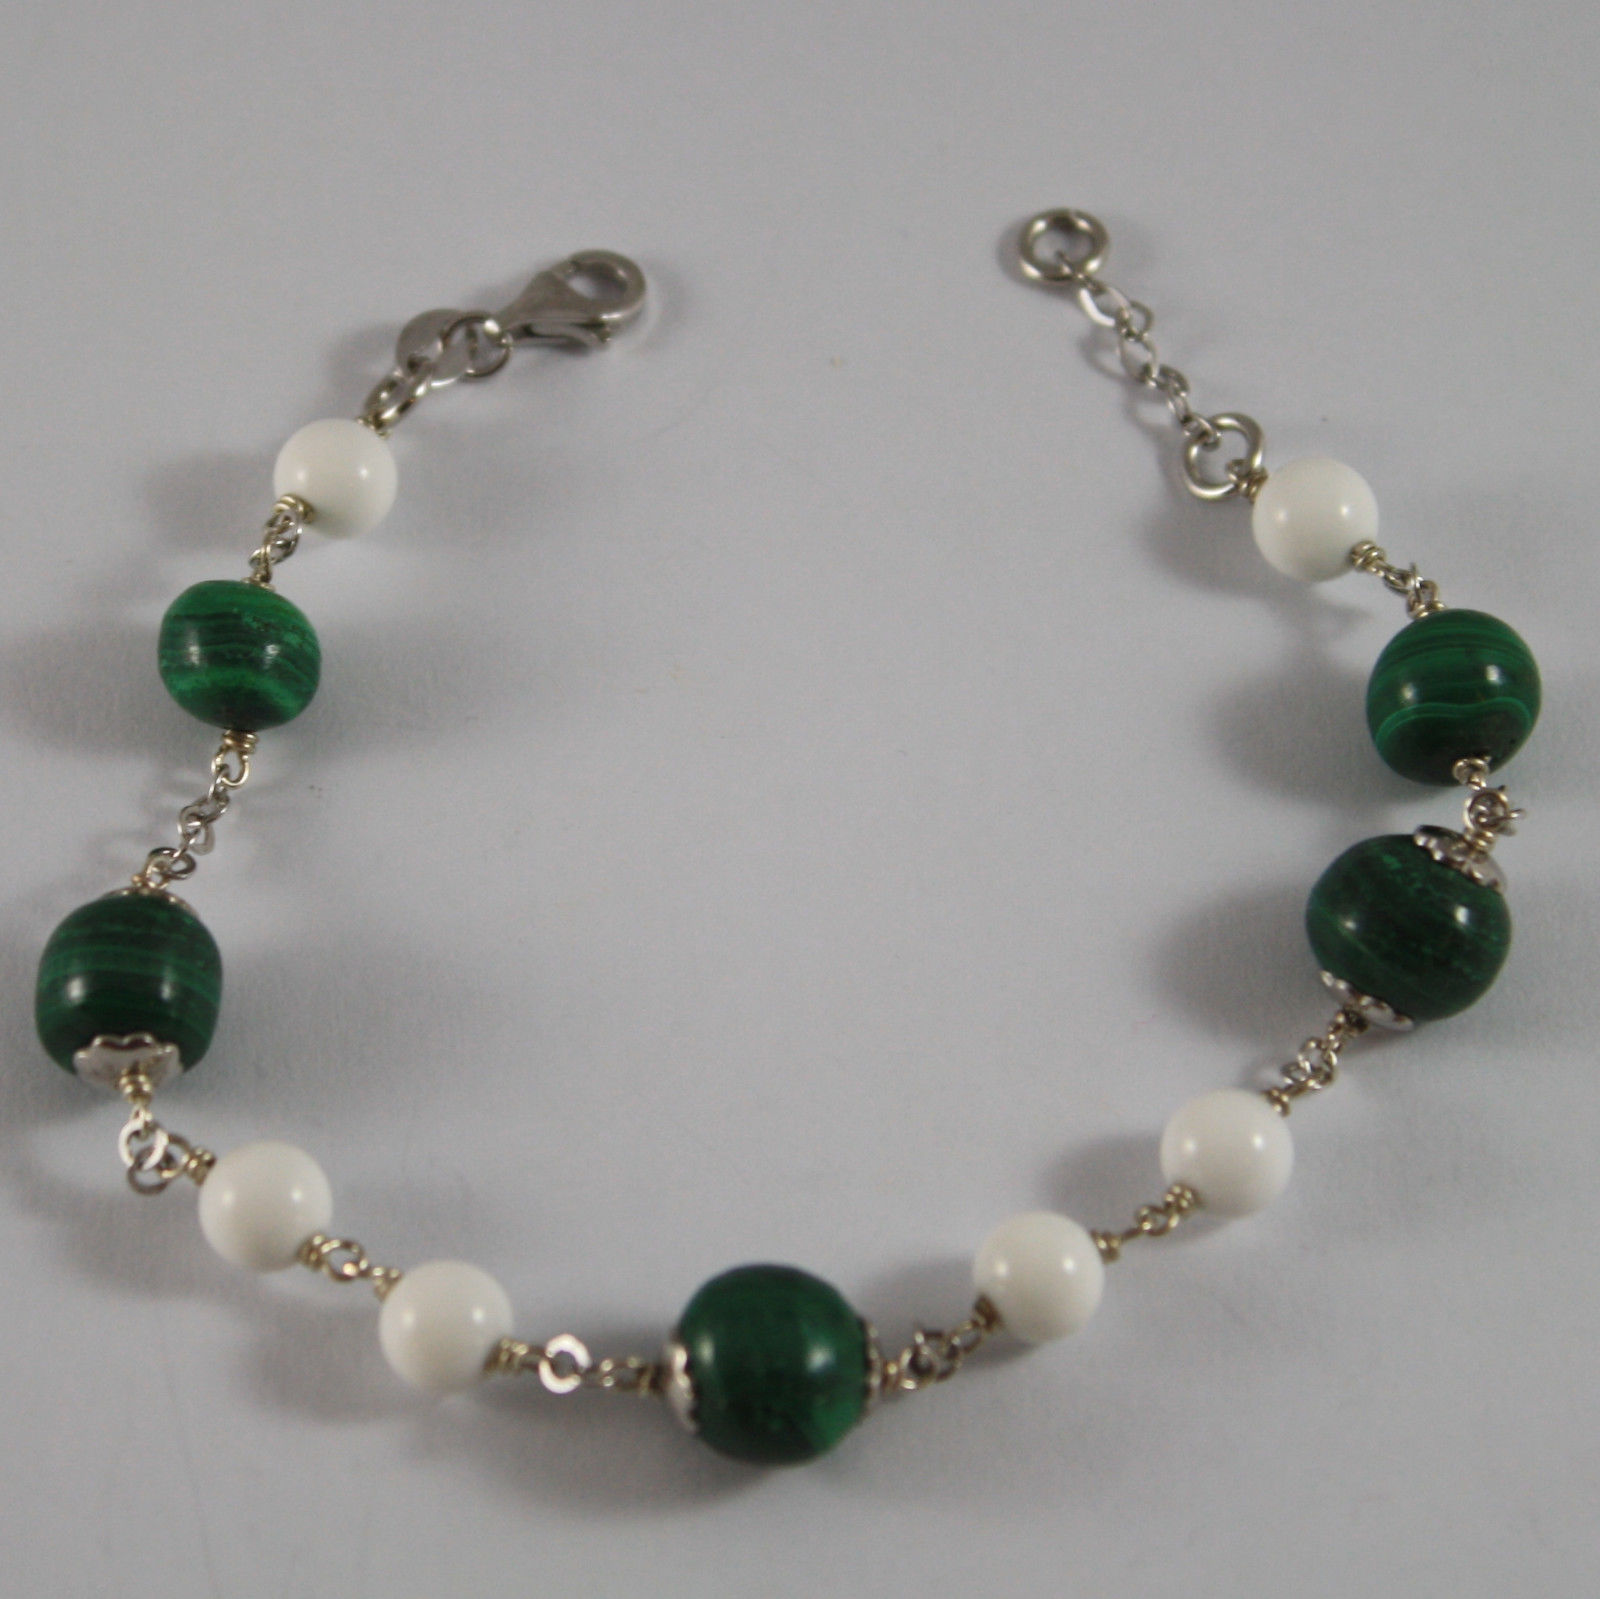 .925 RHODIUM SILVER BRACELET WITH GREEN MALACHITE AND WHITE AGATE